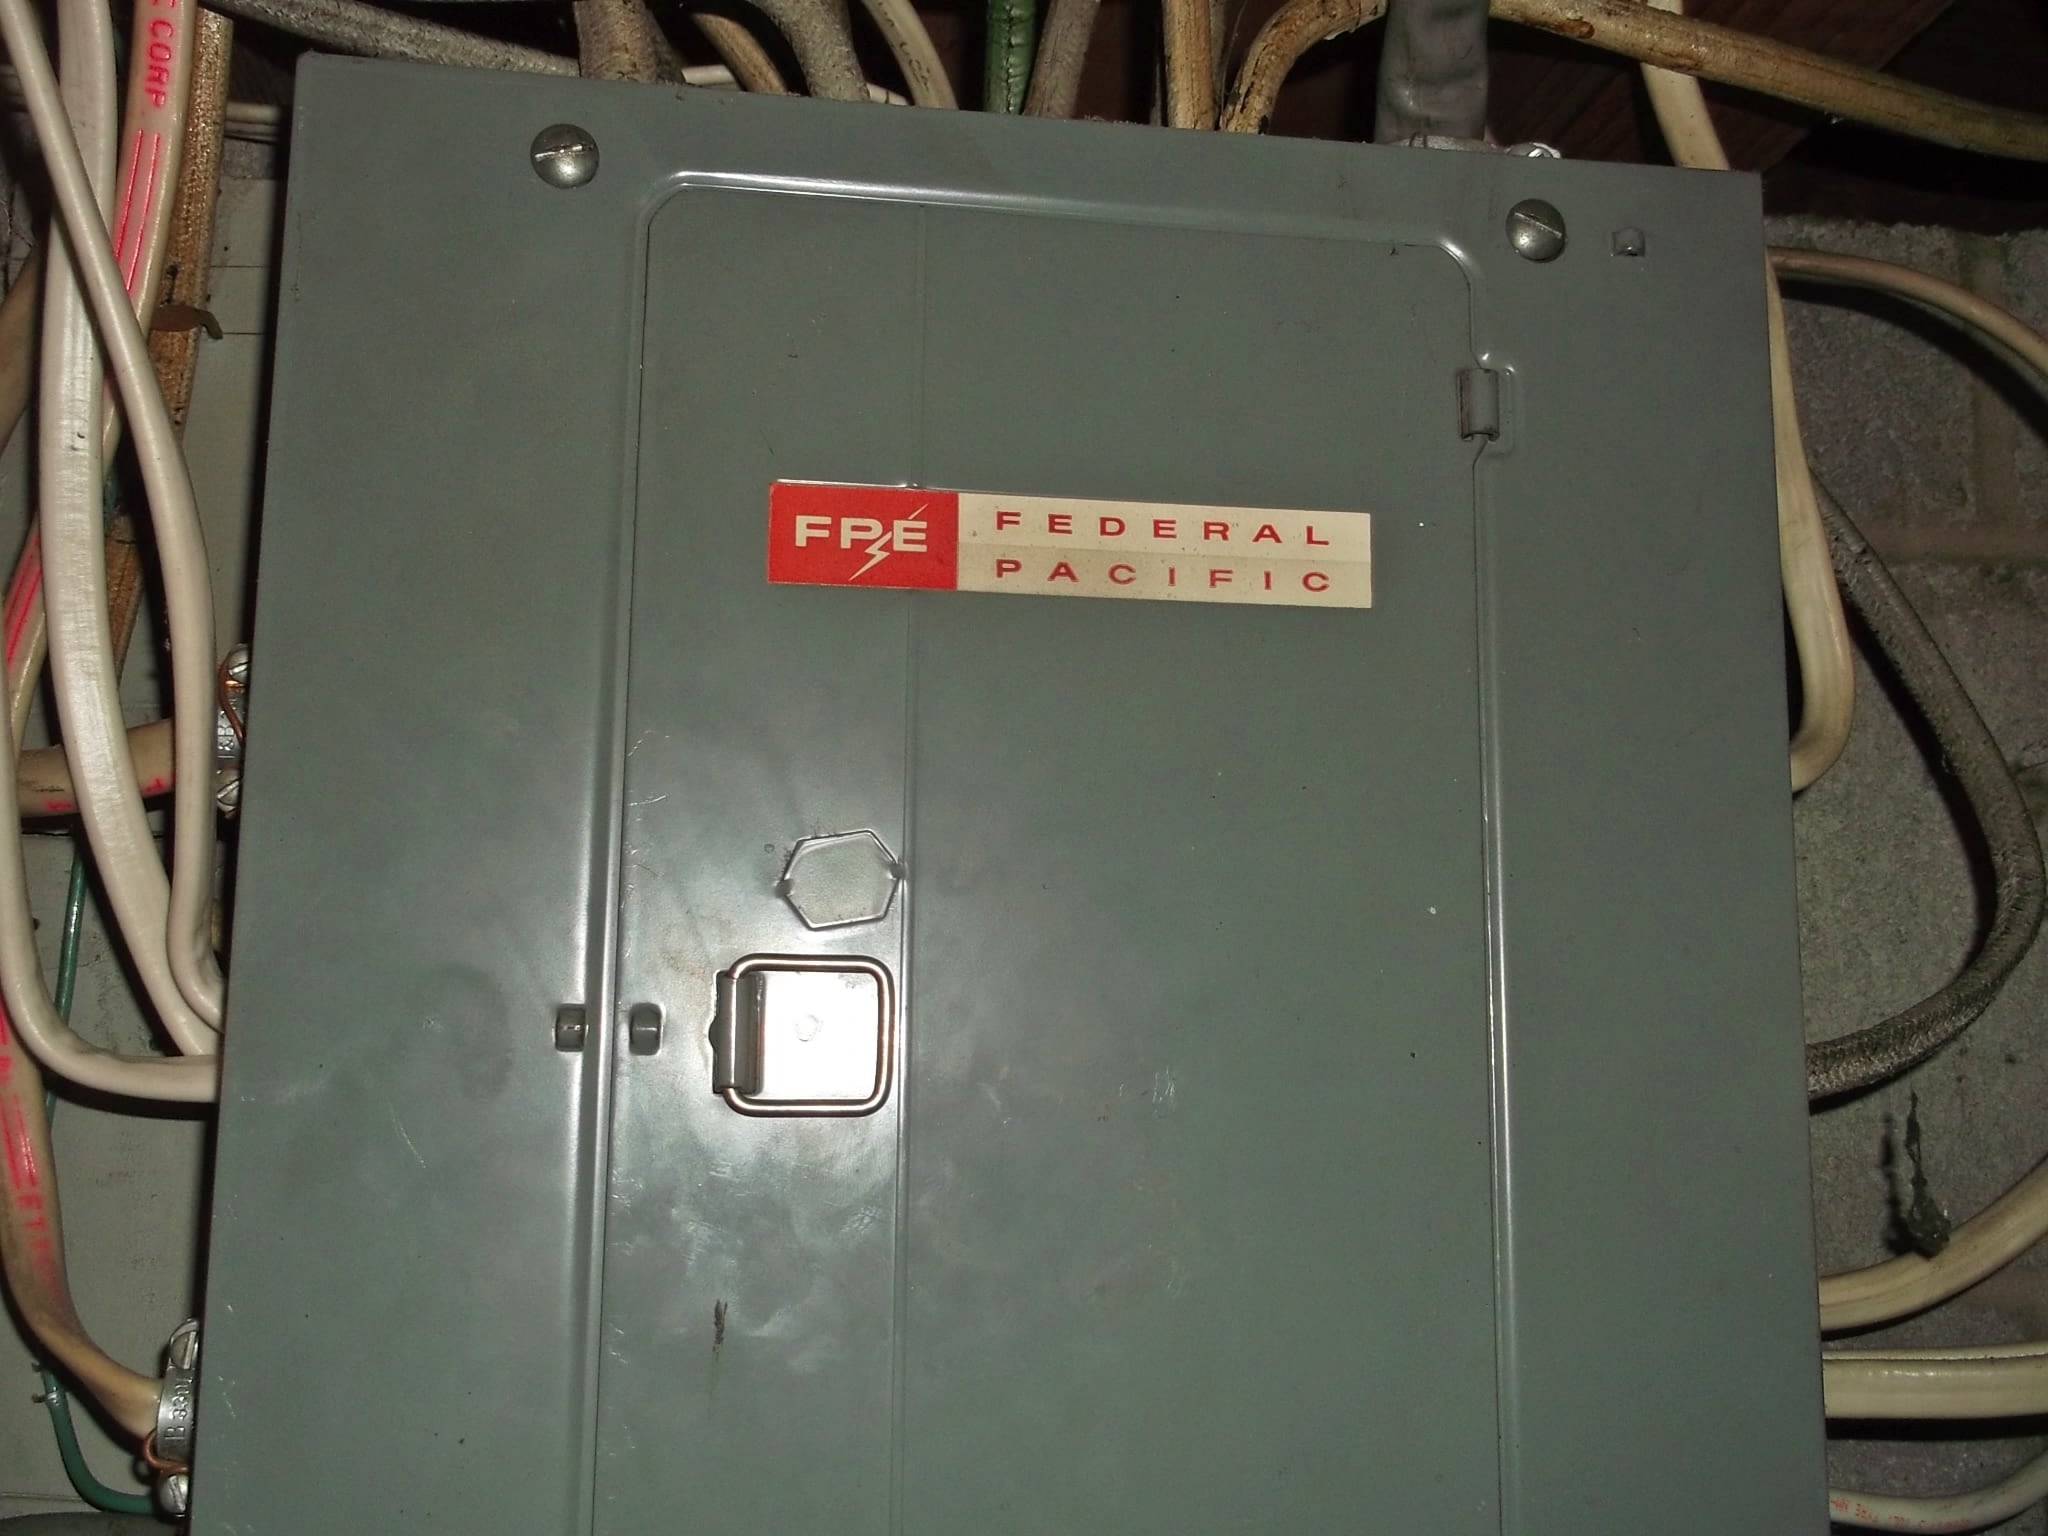 Federal Pacific circuit panel